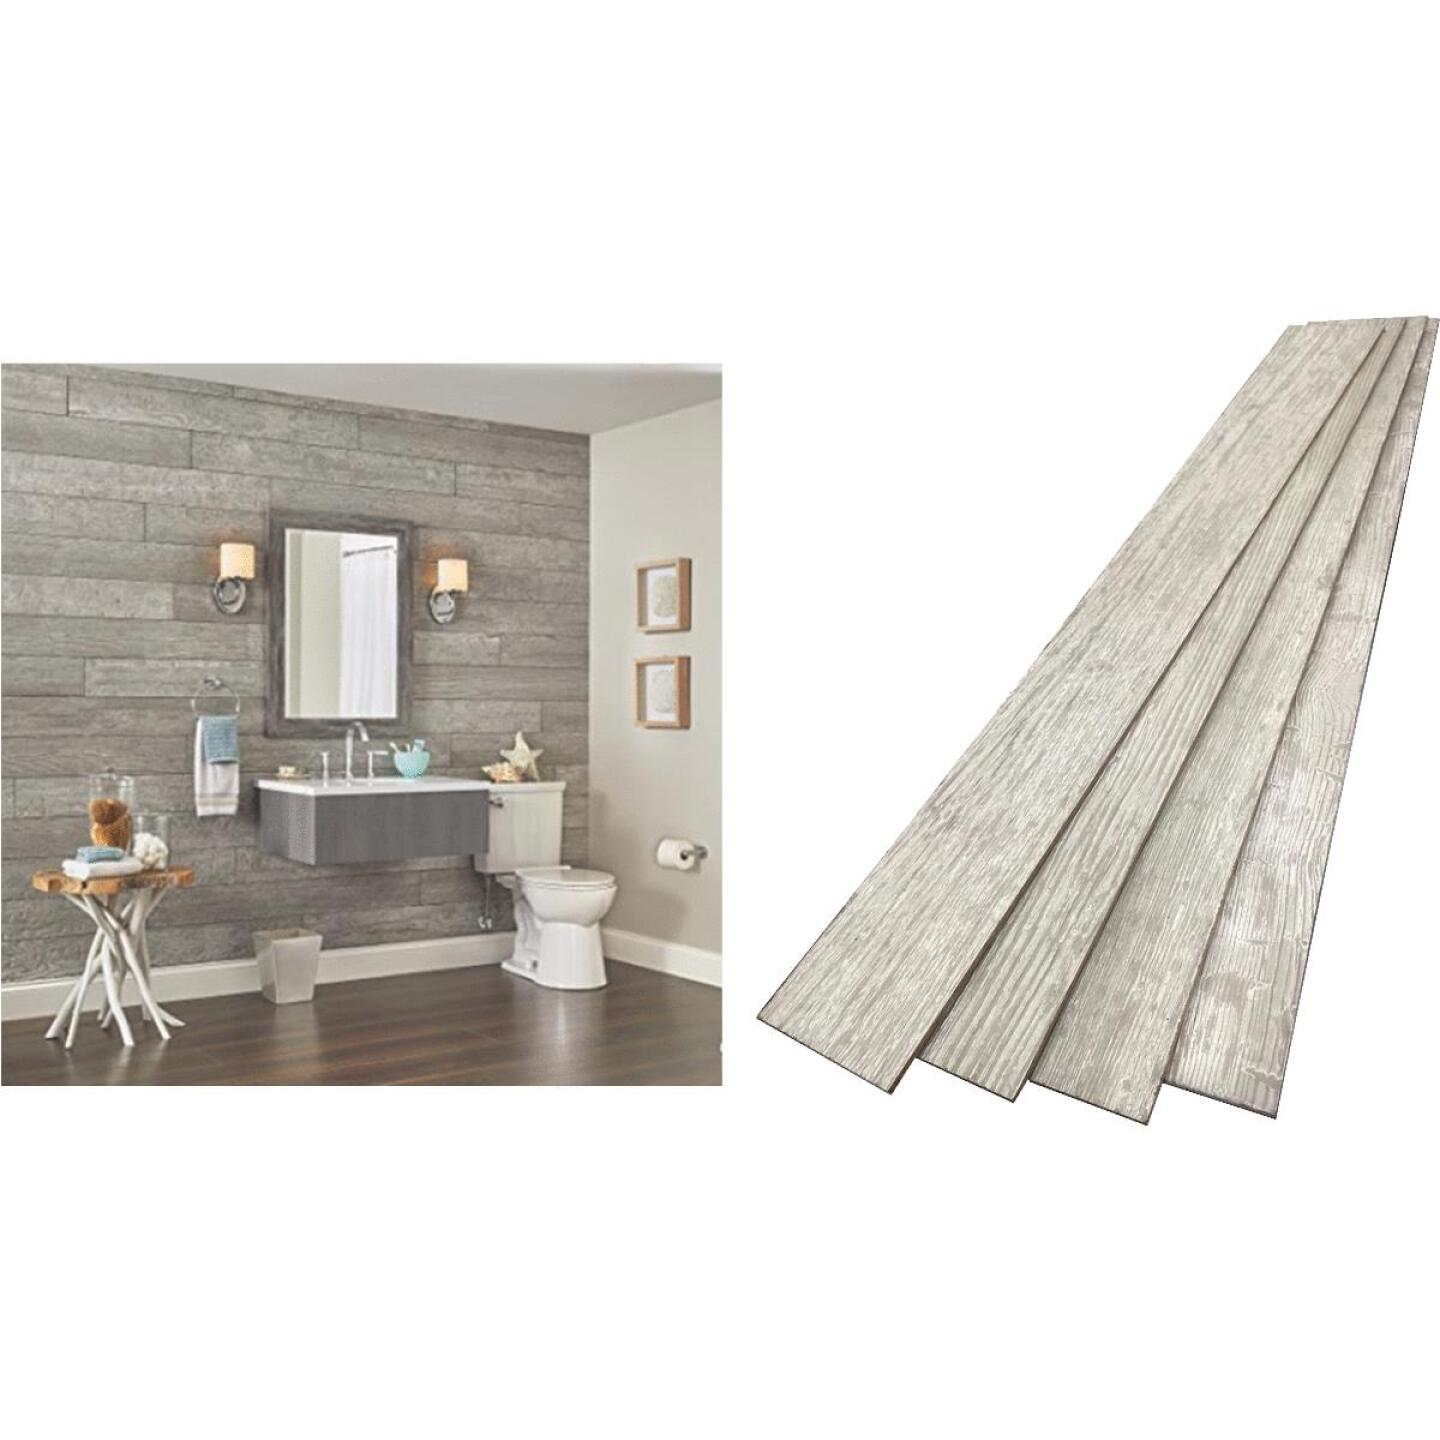 DPI 6 In. W. x 48 In. L. x 1/4 In. Thick Pewter Gray Rustic Wall Plank (12-Pack) Image 1